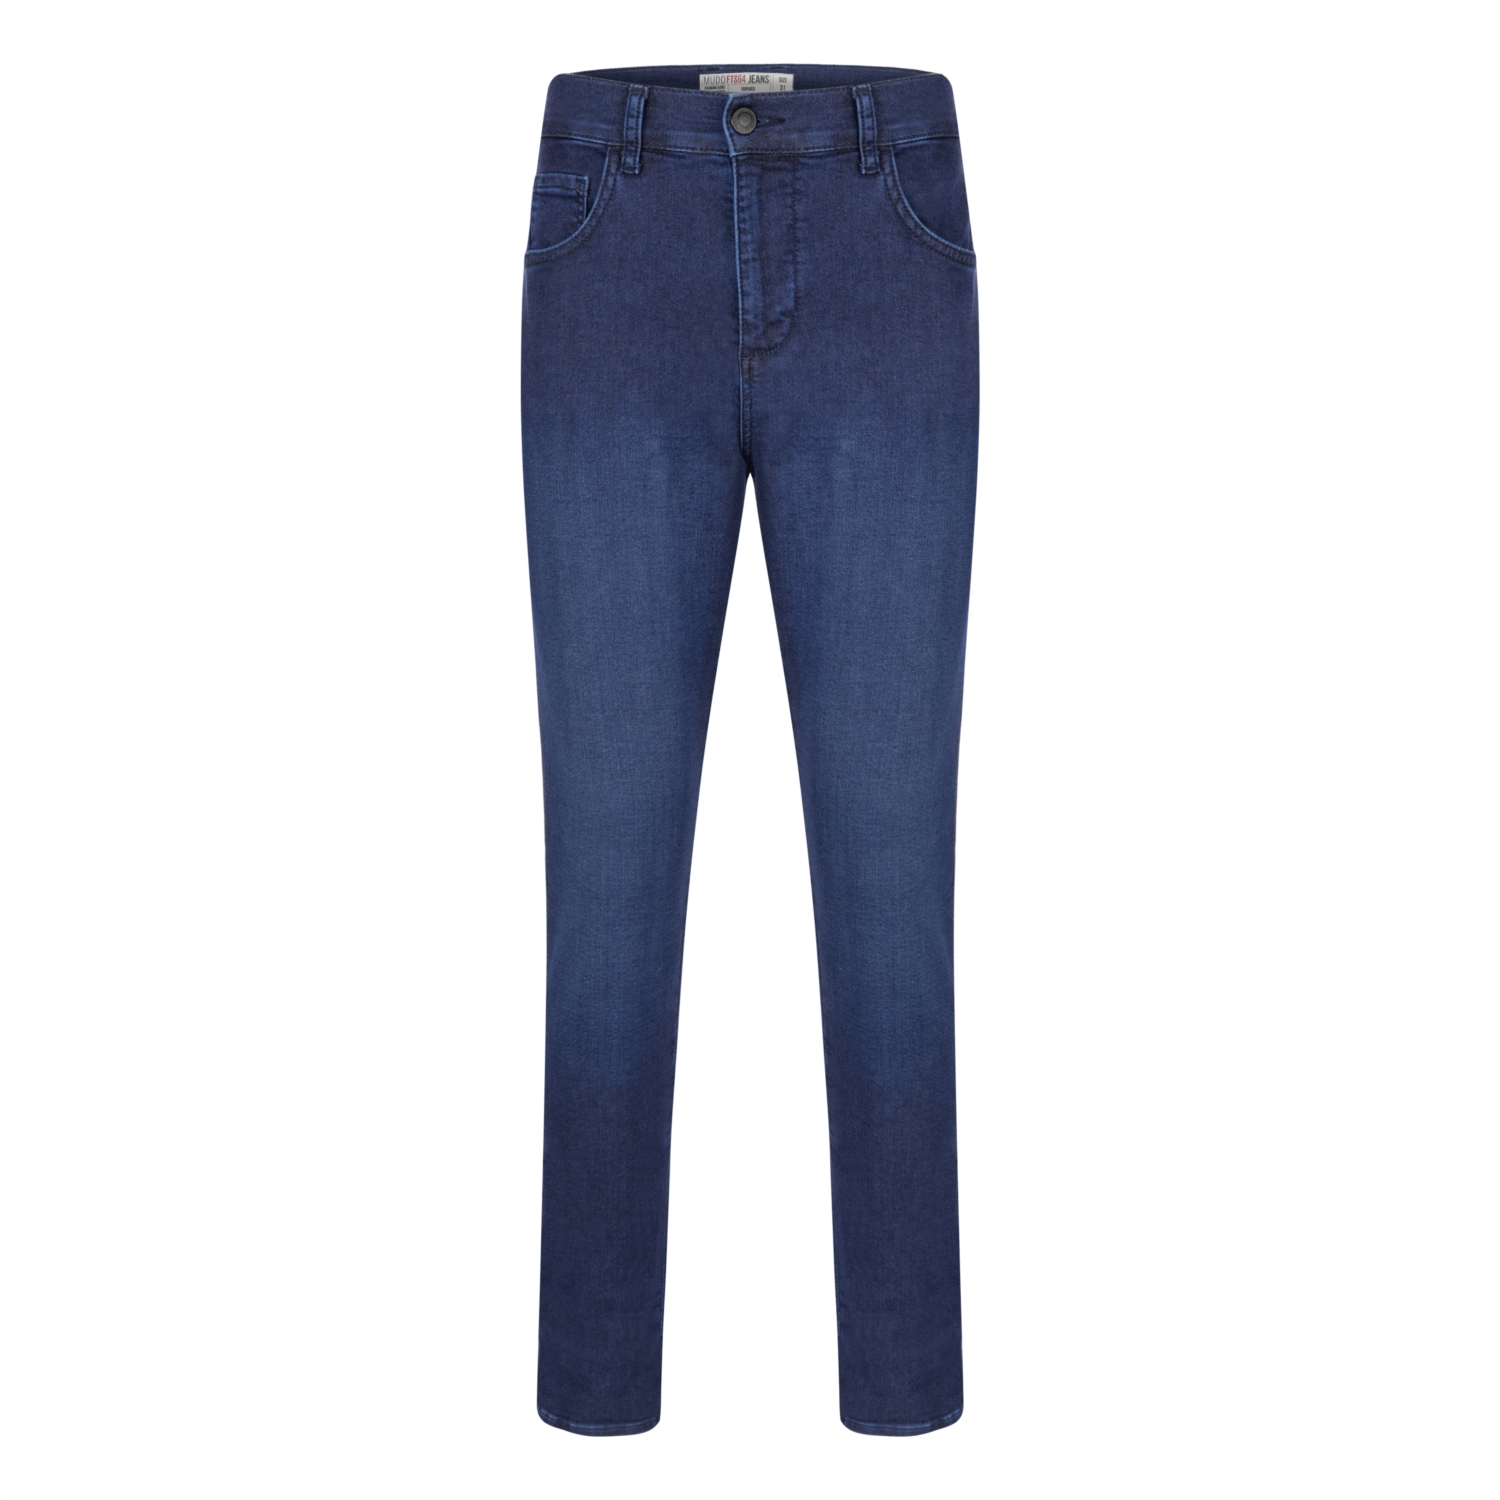 TAPERED JEAN PANTOLON